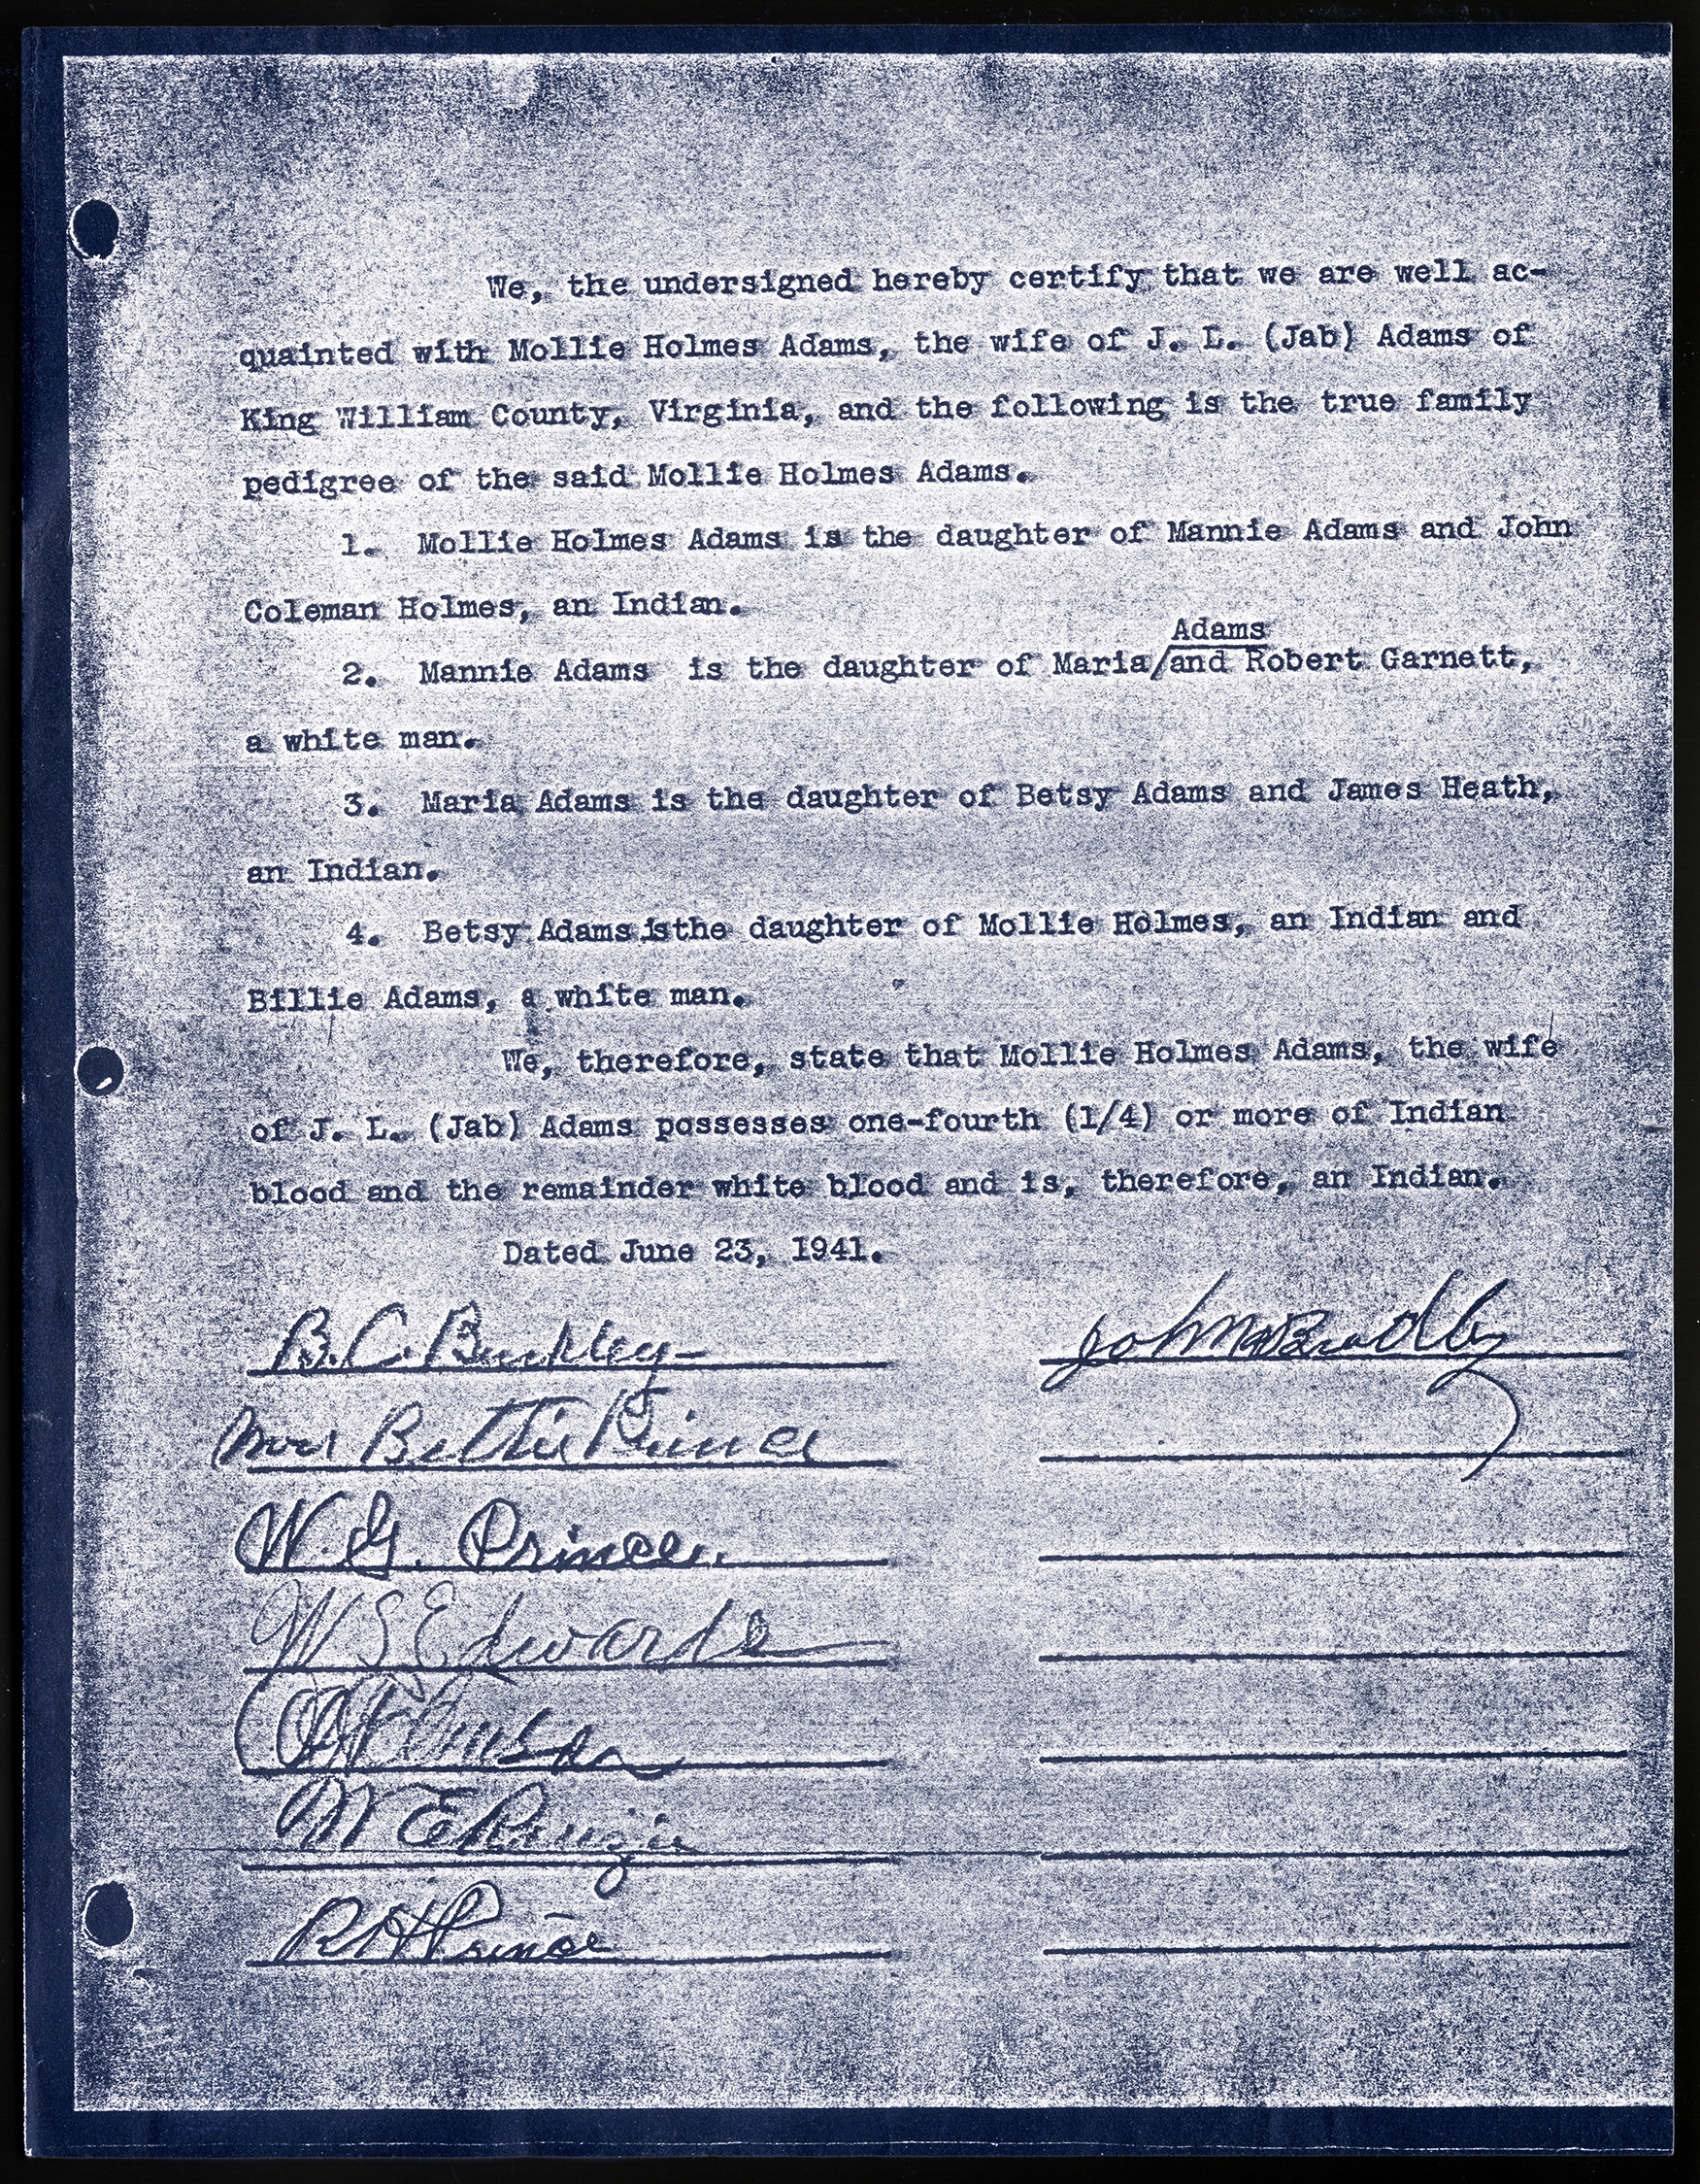 A document signed by eight people certifying that Mollie Holmes Adams was an Indian, in the James R. Coates Papers, 1833-1947, Accession 31577, Library of Virginia.